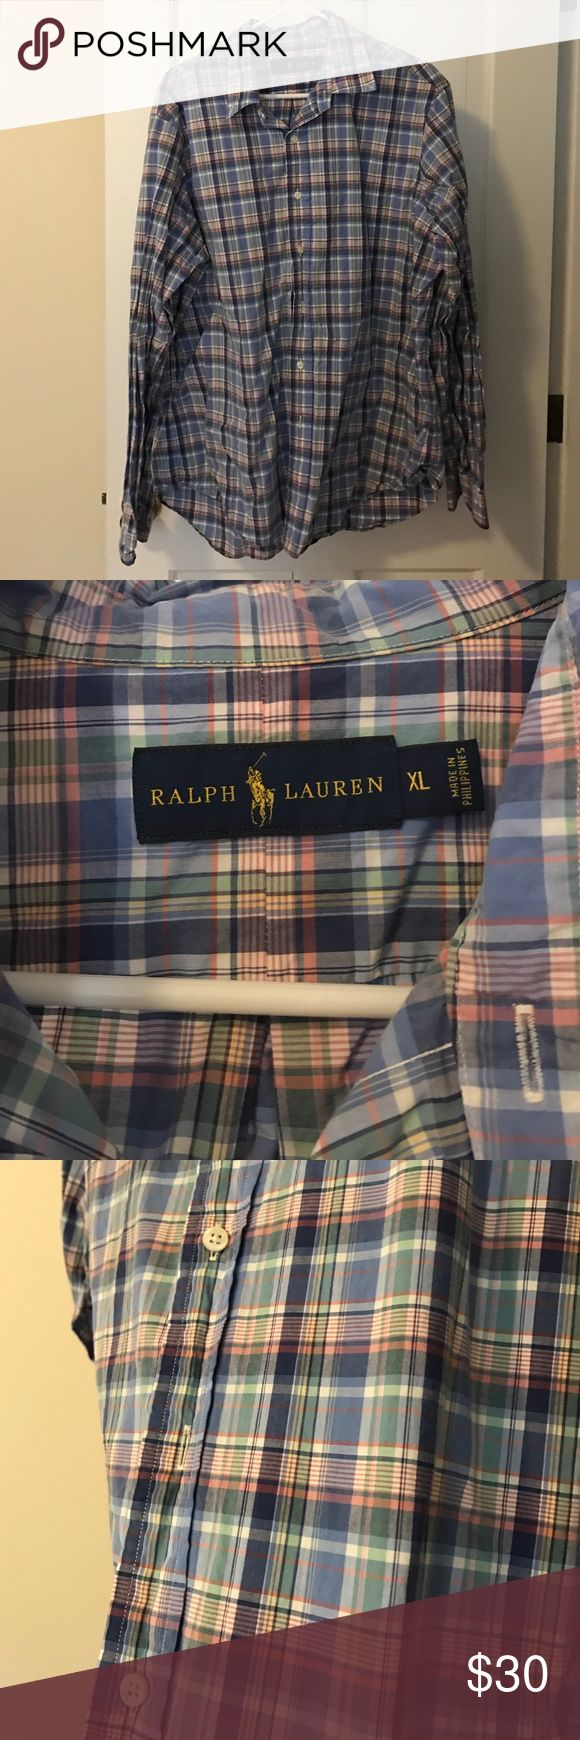 Ralph Lauren blue and pink shirt I am cleaning out my husbands closet. He has more than 50 shirts from JCrew that we are going through. All are XLARGE and in great condition. Please consider bundling to save. Please msg for more info. Ralph Lauren Shirts